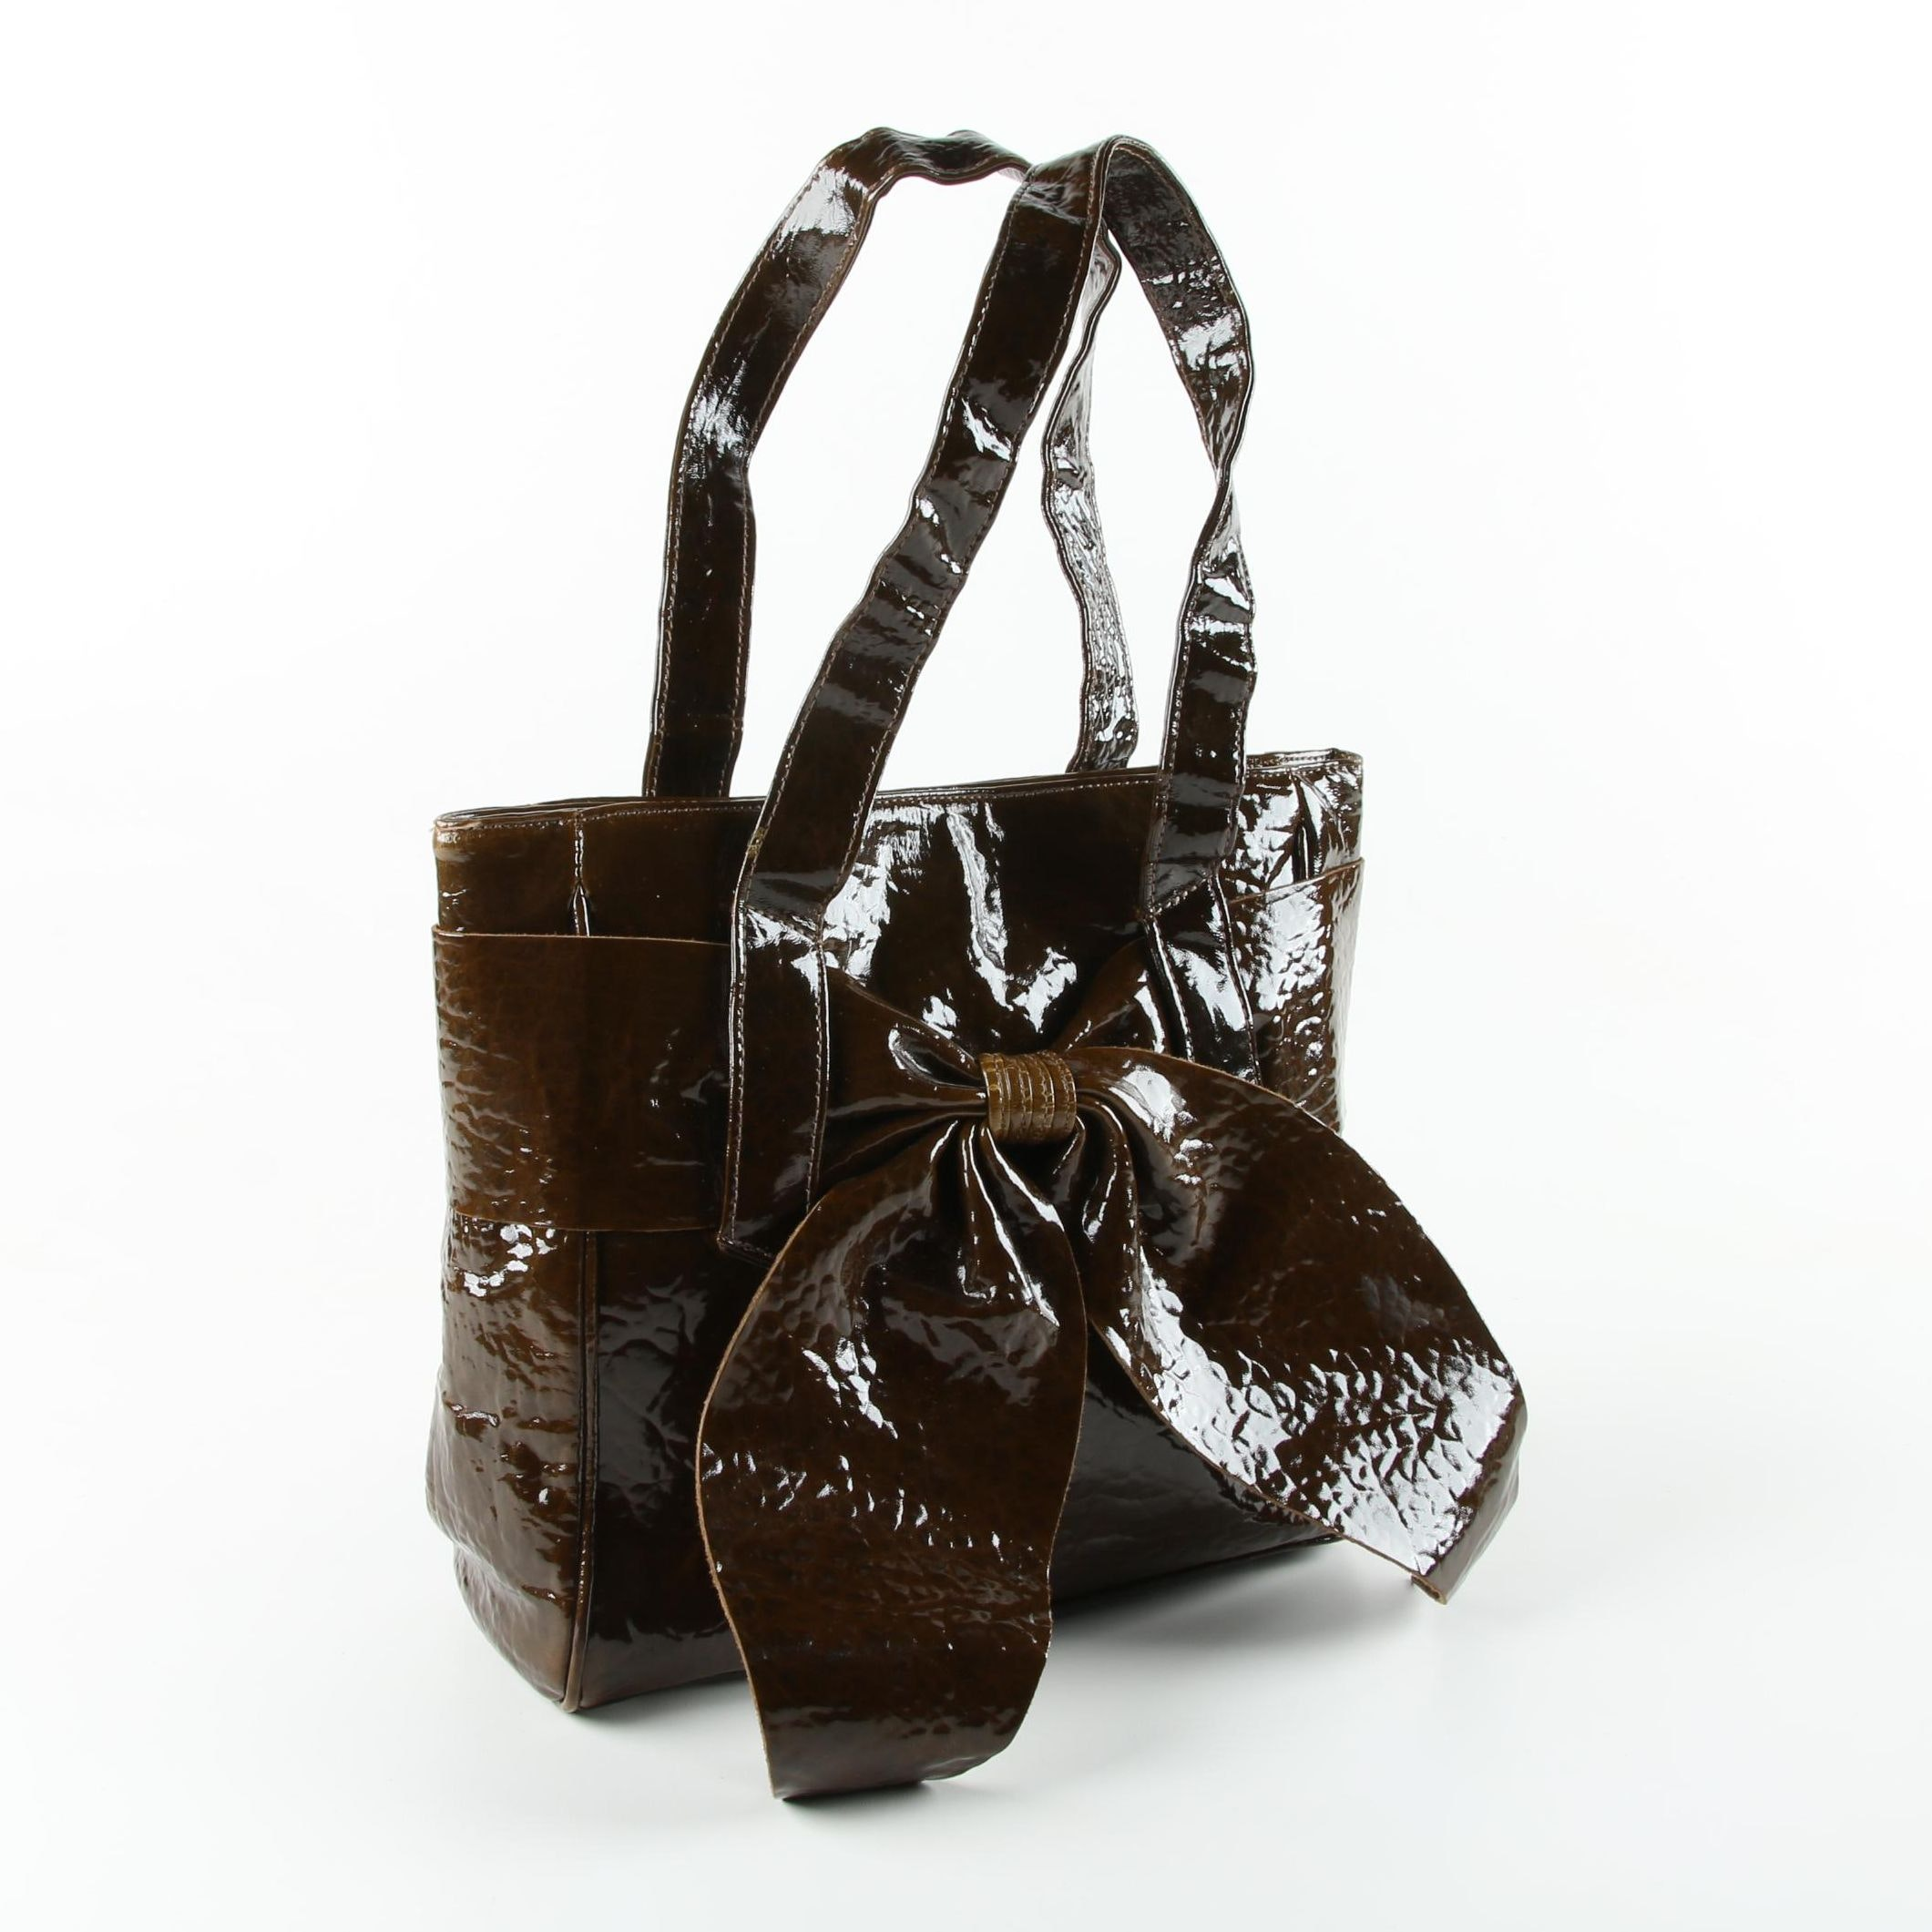 Susan Farber Crushed Patent Leather Tote